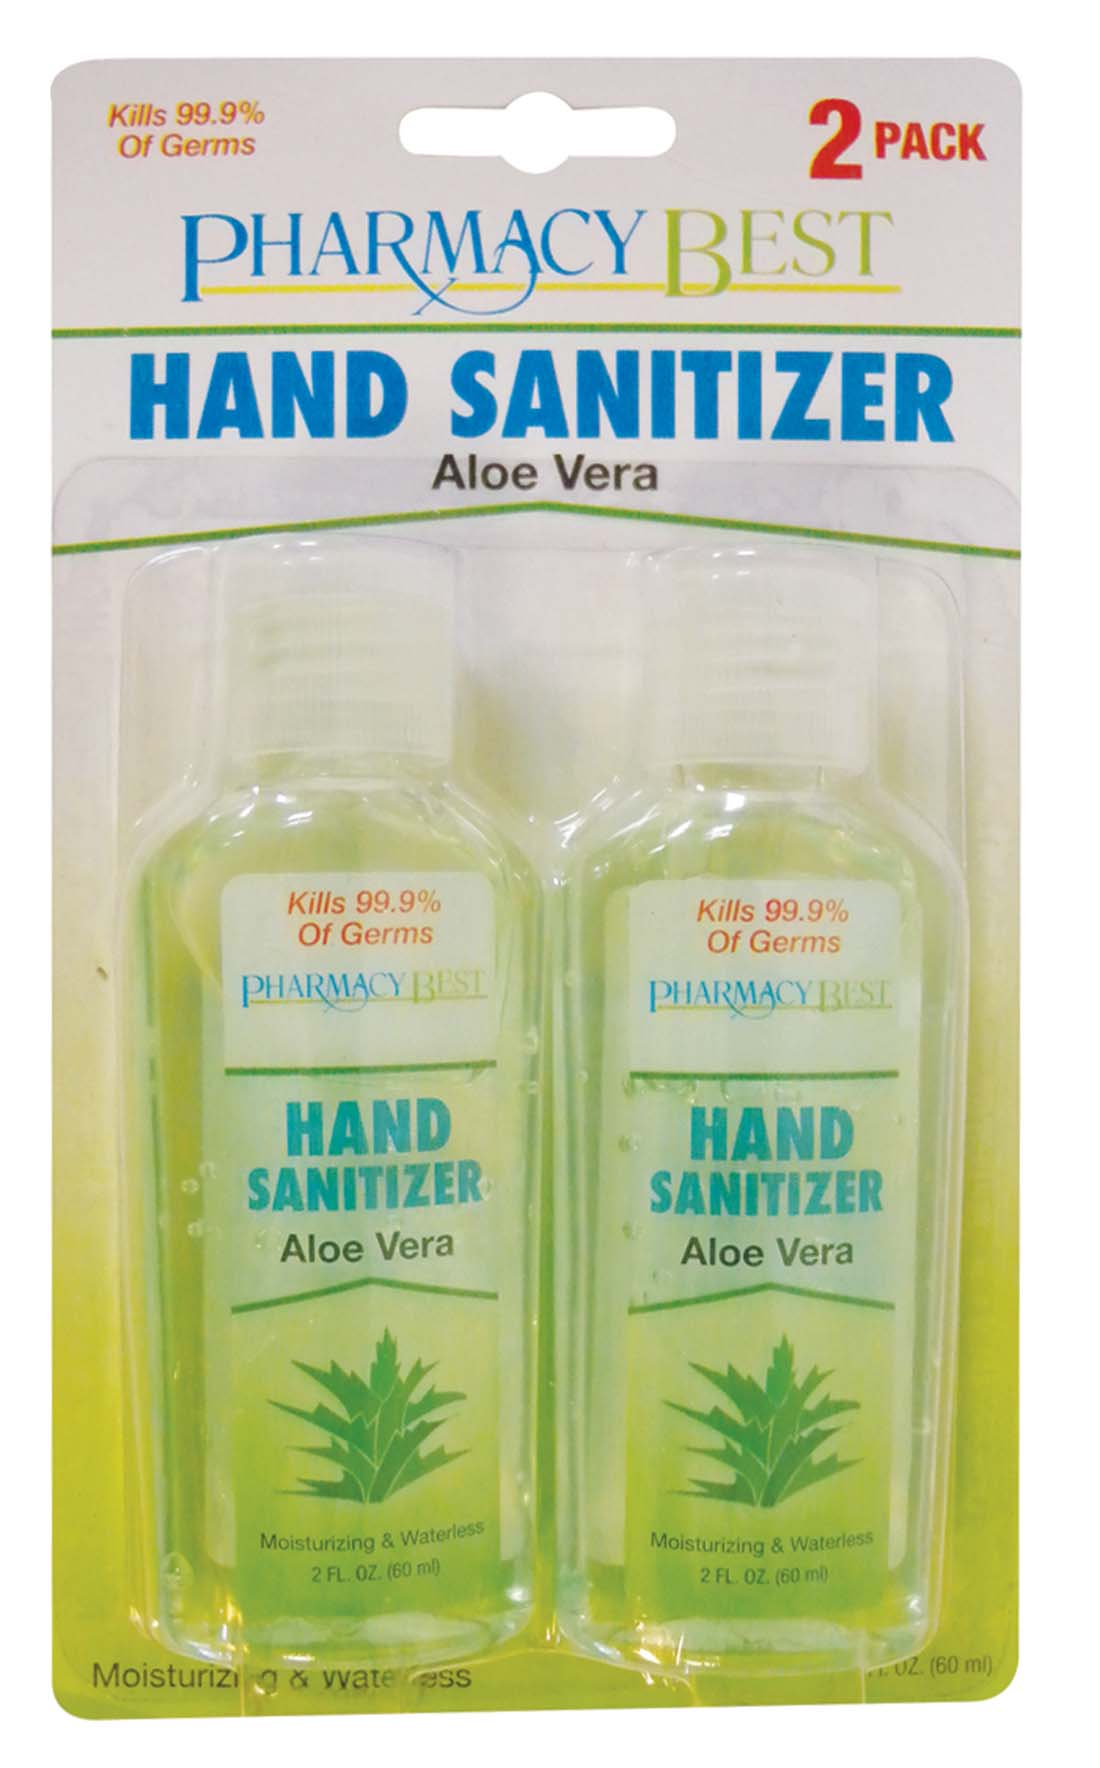 aloe vera hand sanitizer Antibacterial travel hand sanitizer spray with aloe vera by l'autre peau - unique flat credit card shape - citrus scented mini pocket size (4 pack - 20ml, frost,black,red,blue) by l'autre peau $899 $ 8 99 ($225/count.